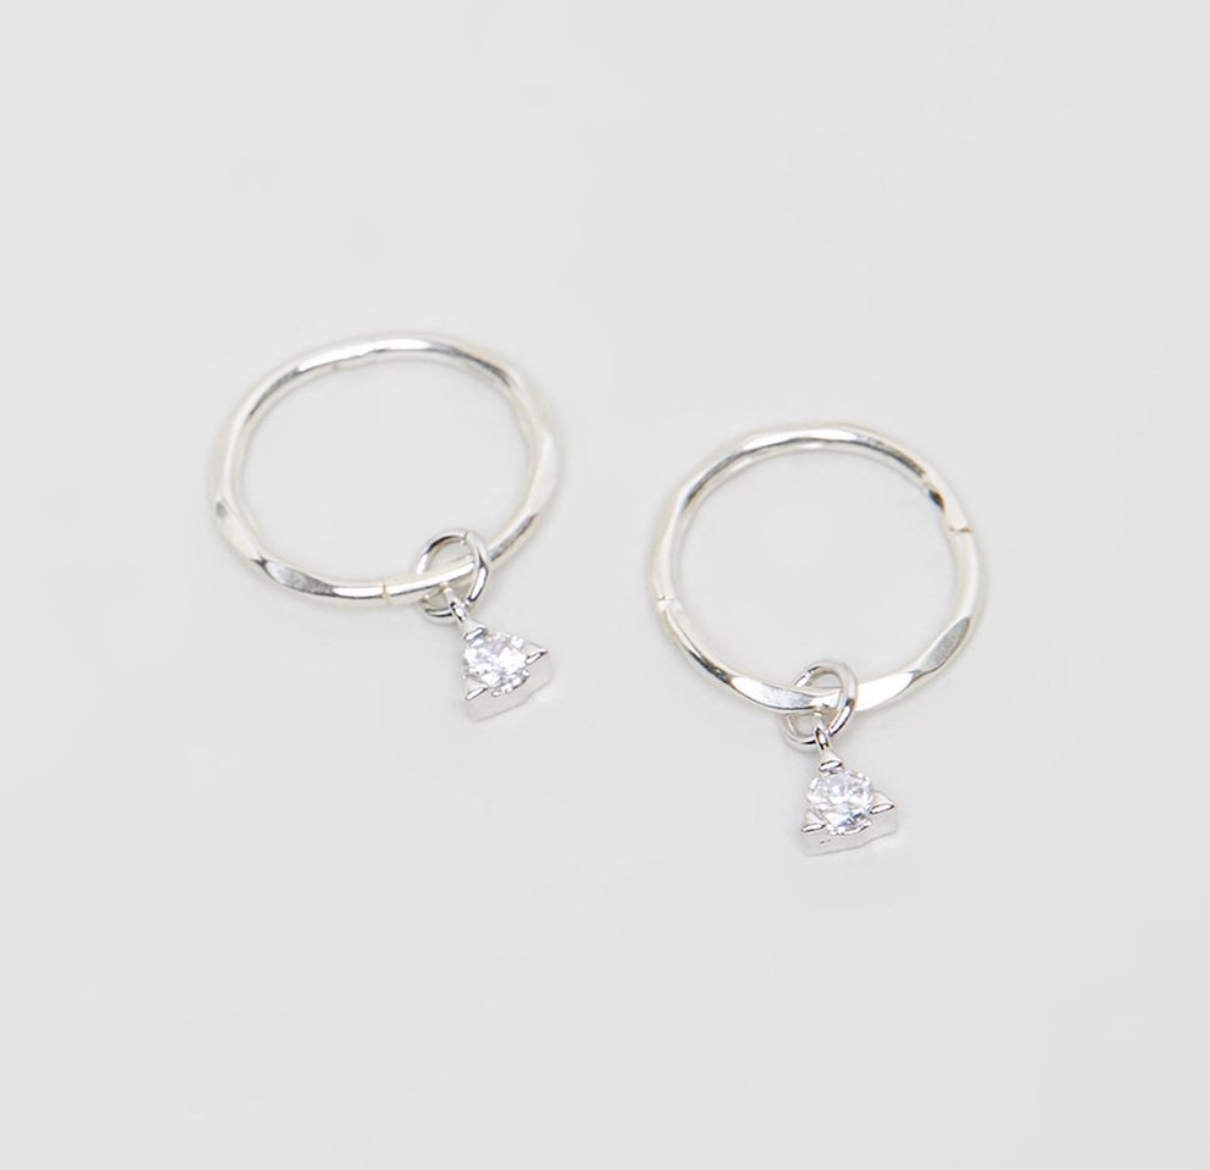 SAINT MINI HOOPS - SILVER